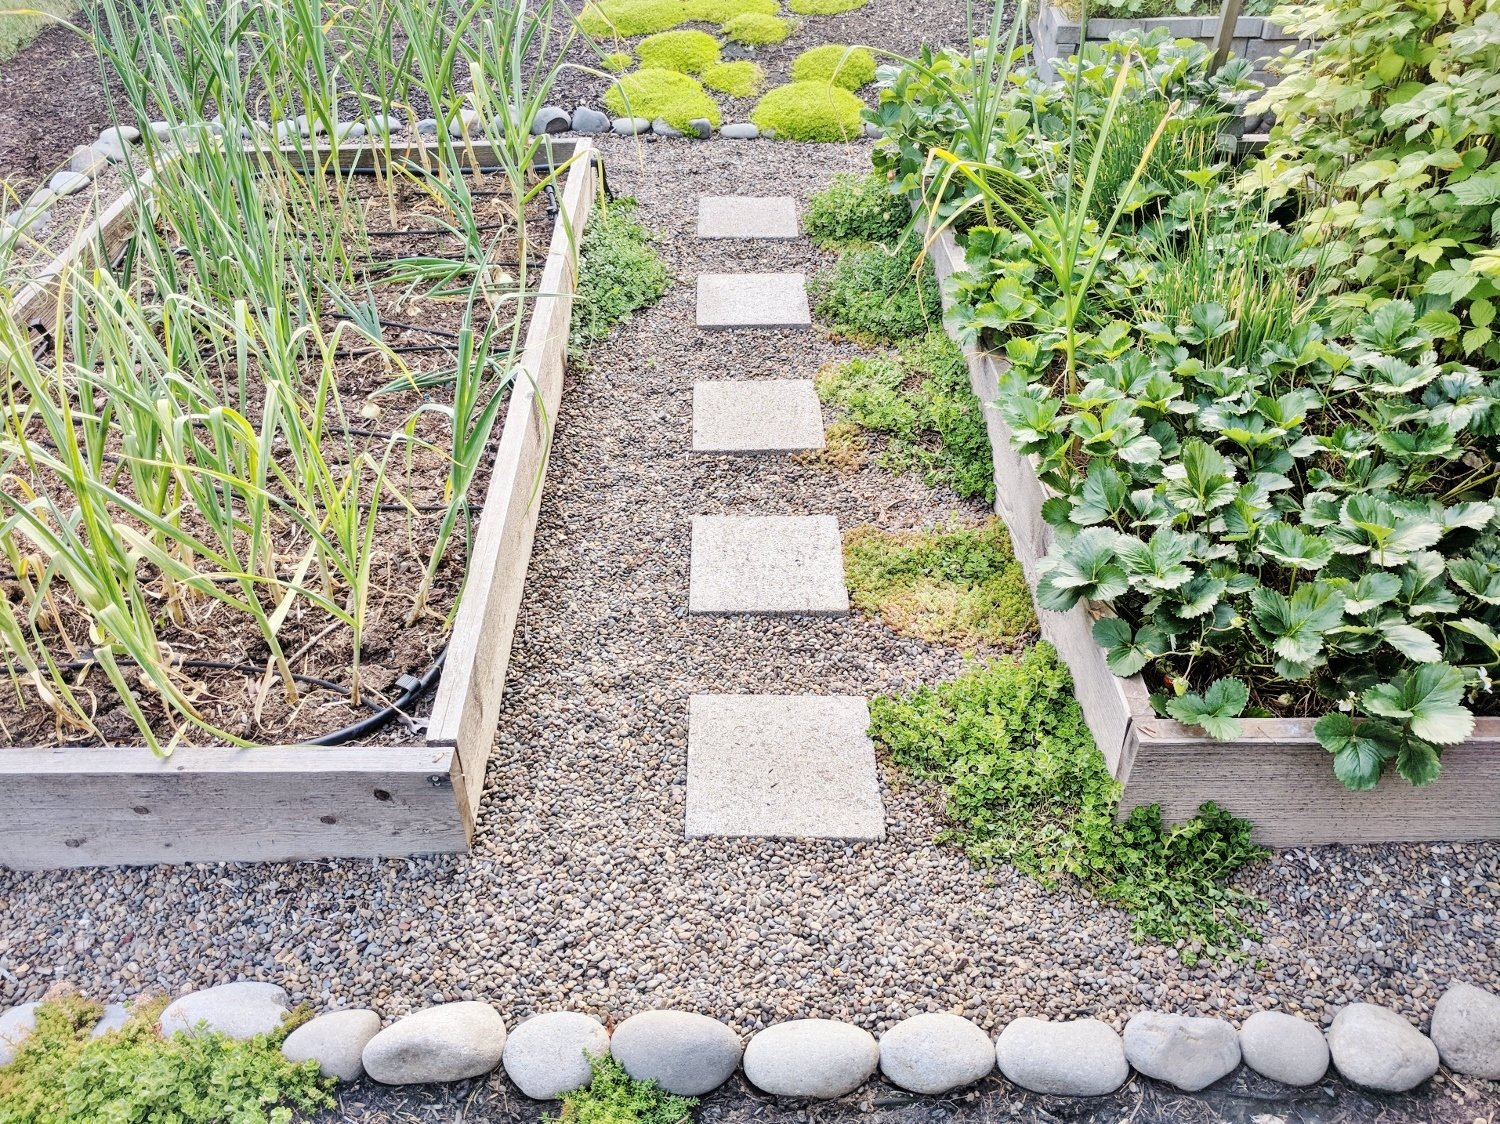 Raised bed garden landscaped with pea gravel and paver stones